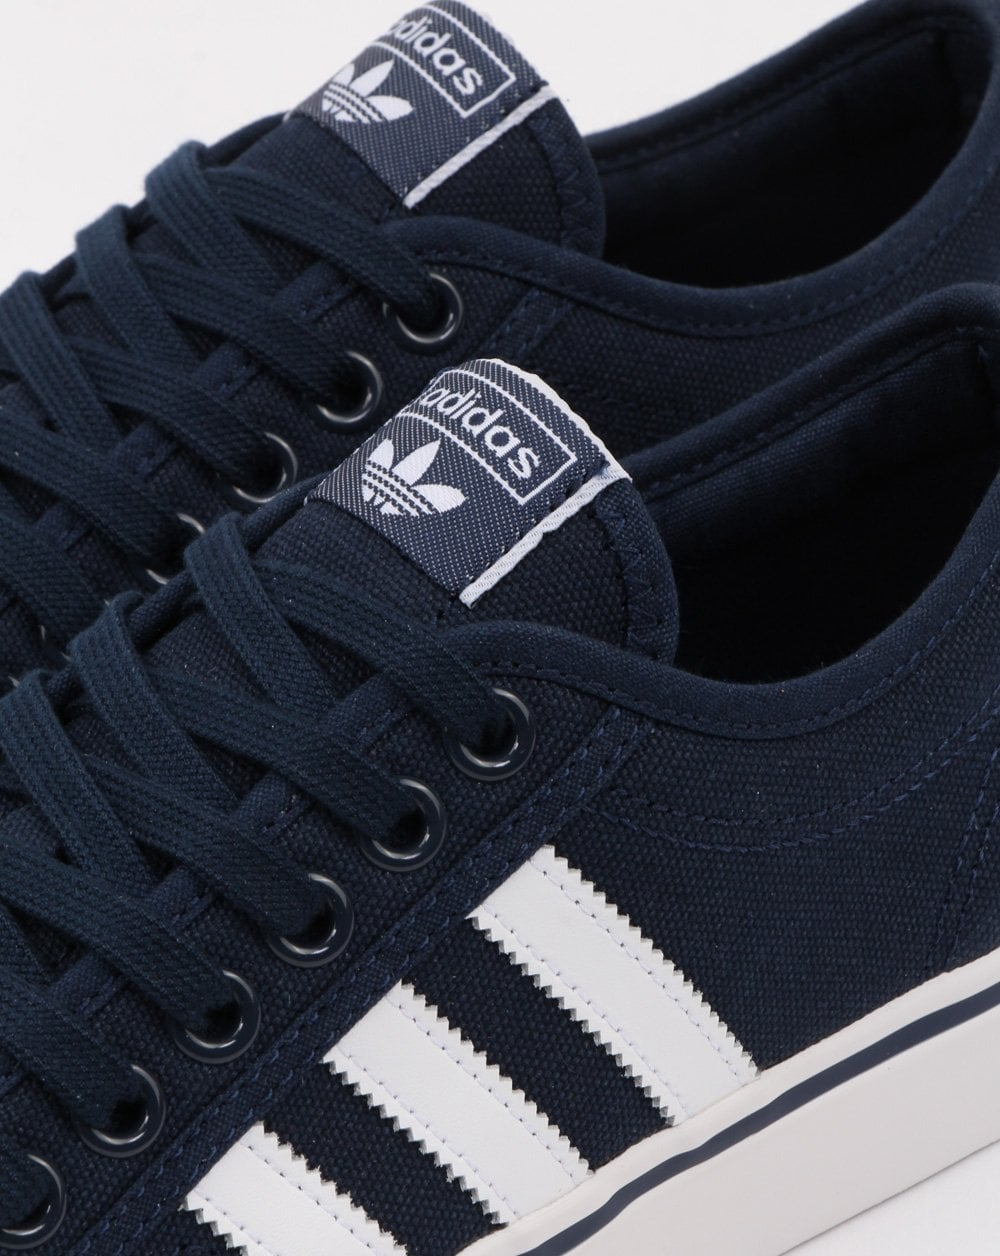 Adidas Nizza Trainers in Navy/White